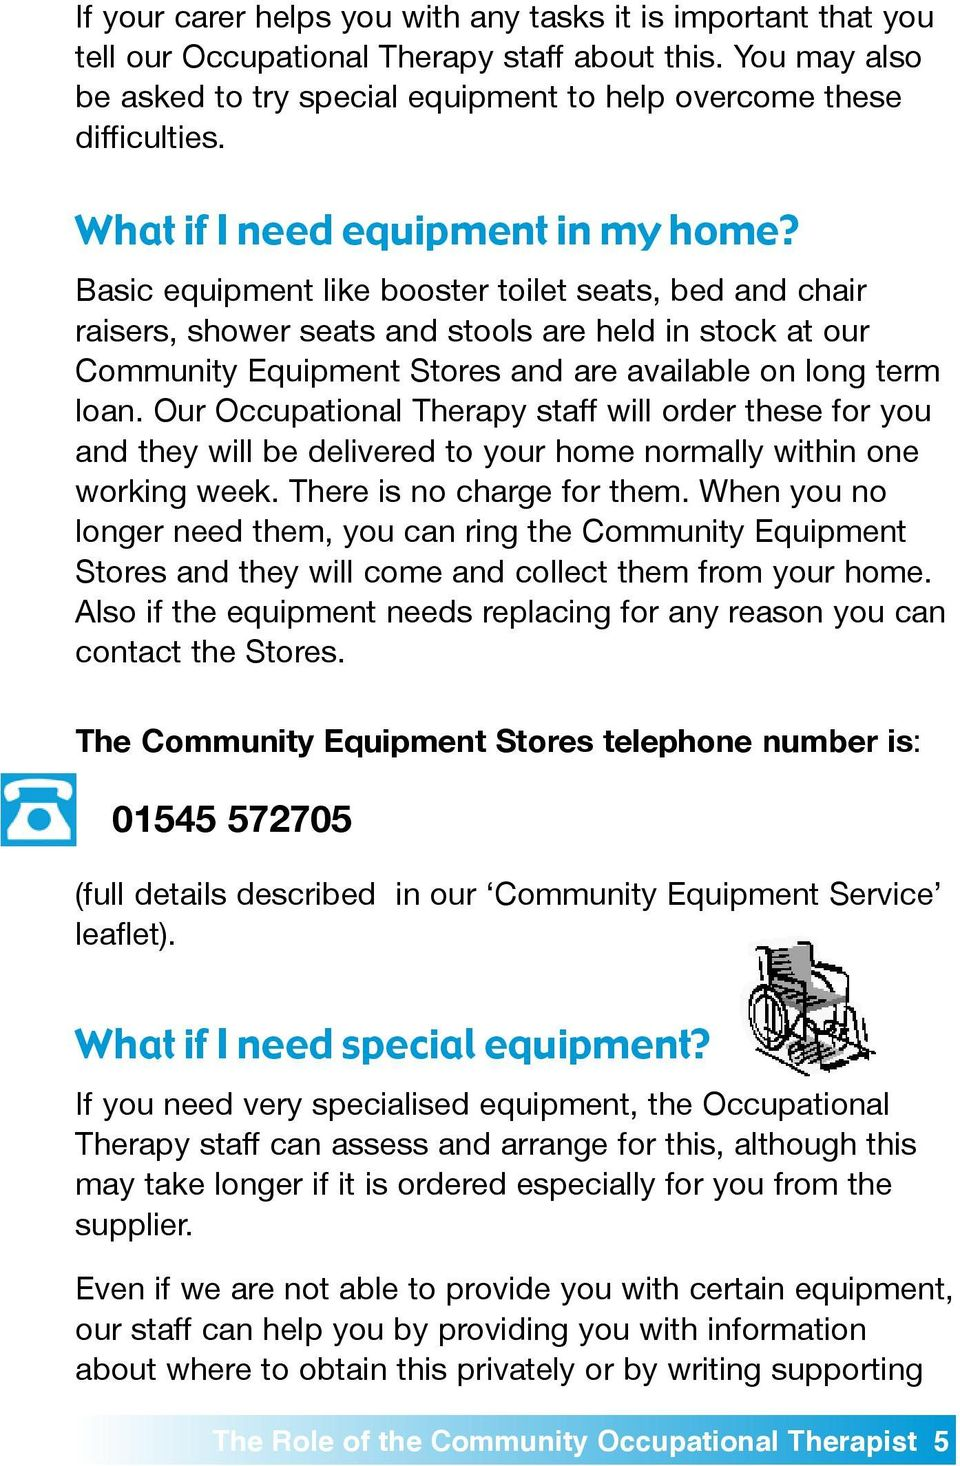 Basic eqipment like booster toilet seats, bed and chair raisers, shower seats and stools are held in stock at or Commnity Eqipment Stores and are available on long term loan.